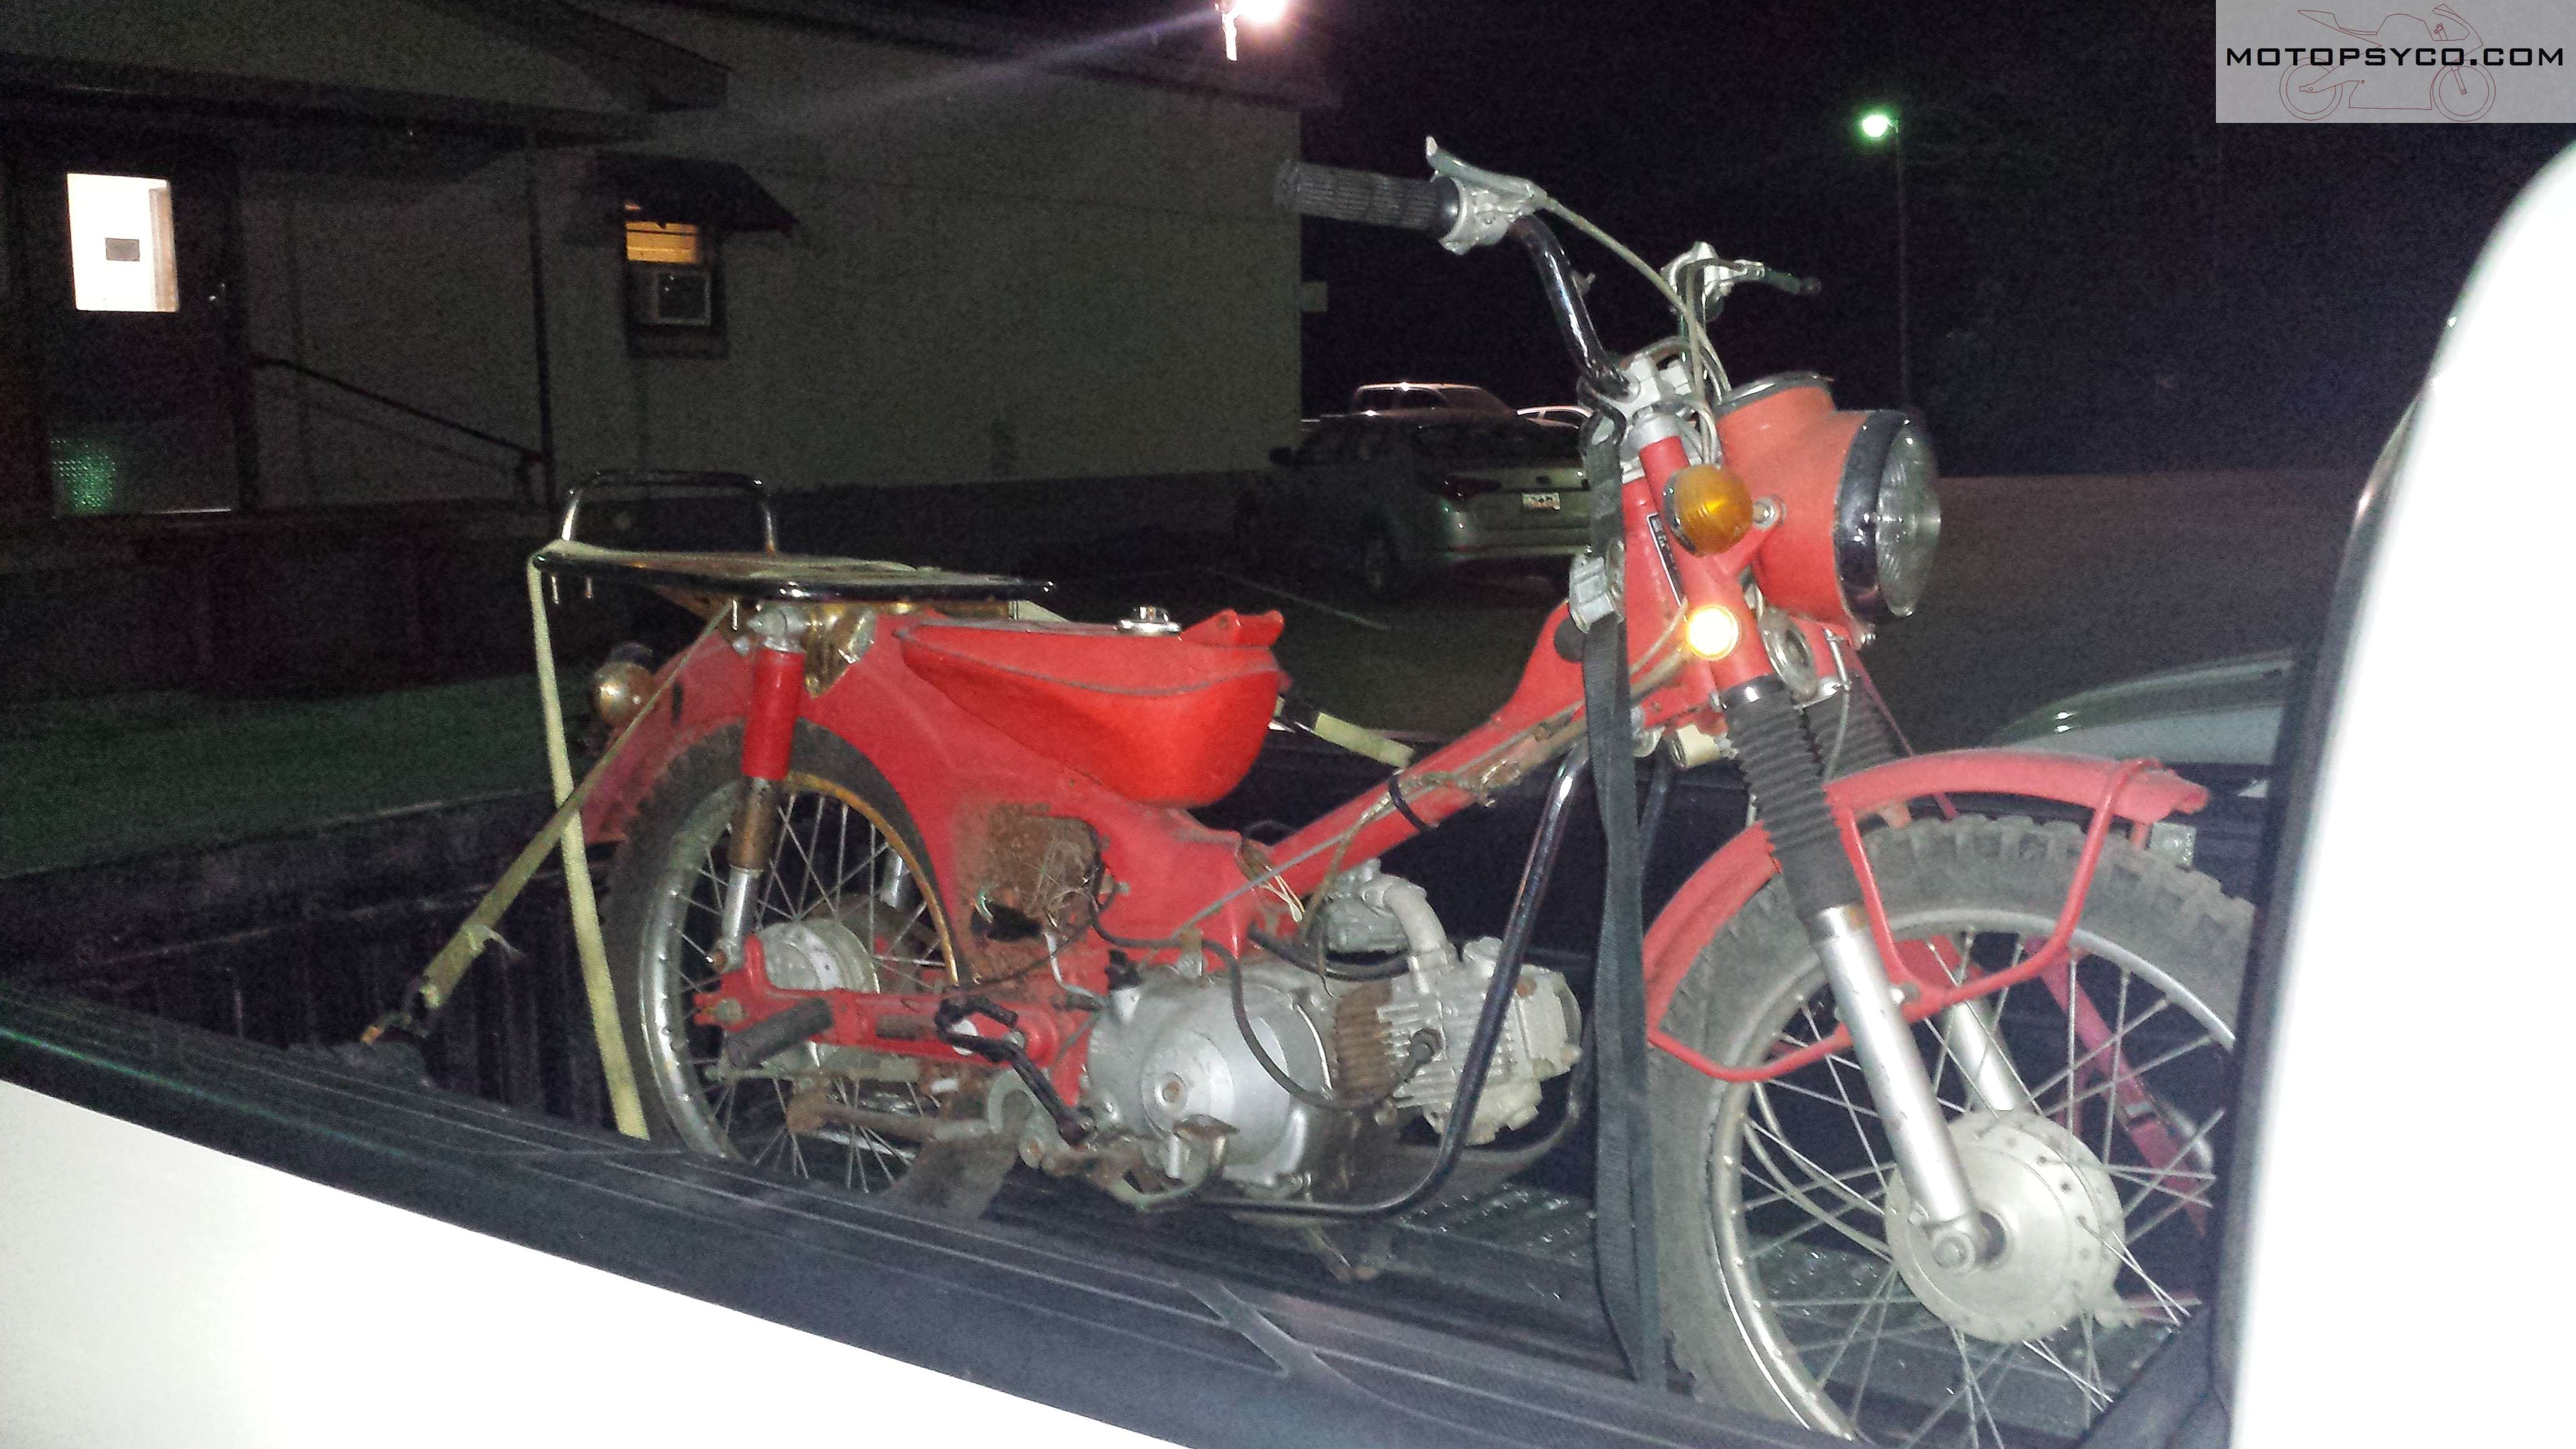 Honda Ct90 Lifan Swap Wiring Manual Of Diagram 1970 Junkyard Dog Motopsyco S Asylum Crazy About Rh Com